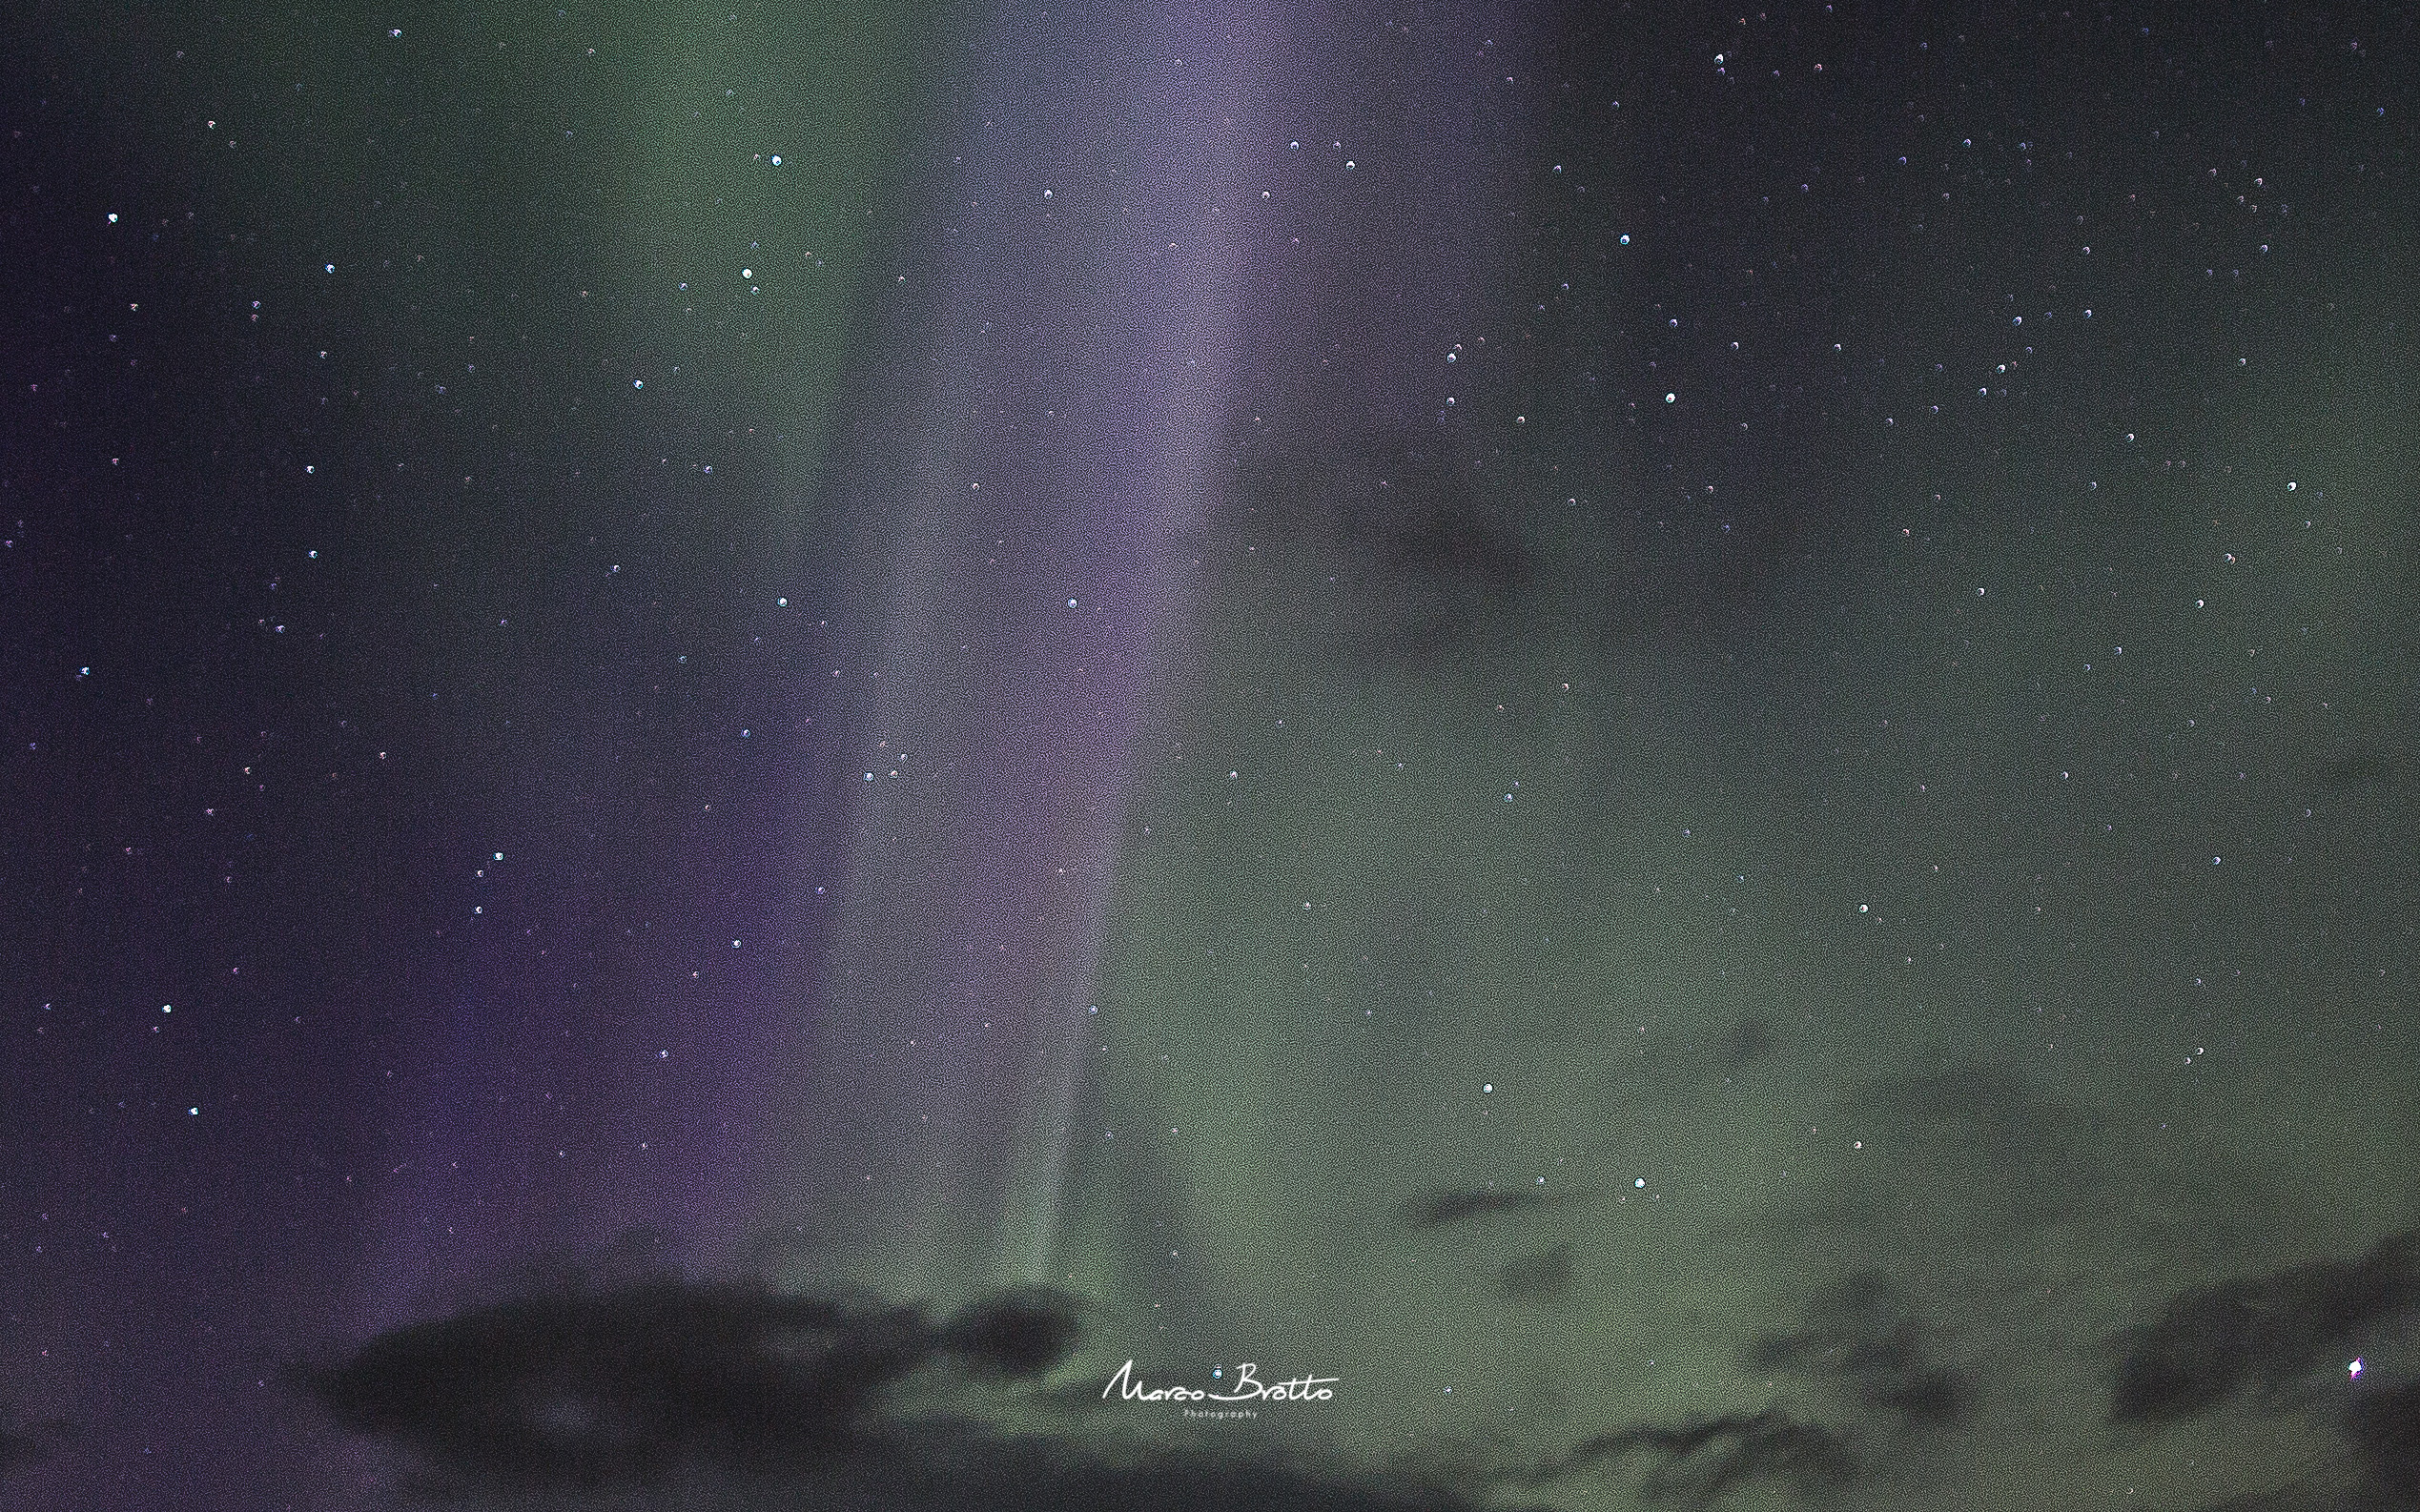 Aurora Boreal Laponia Marco Brotto, Photoimage 2015